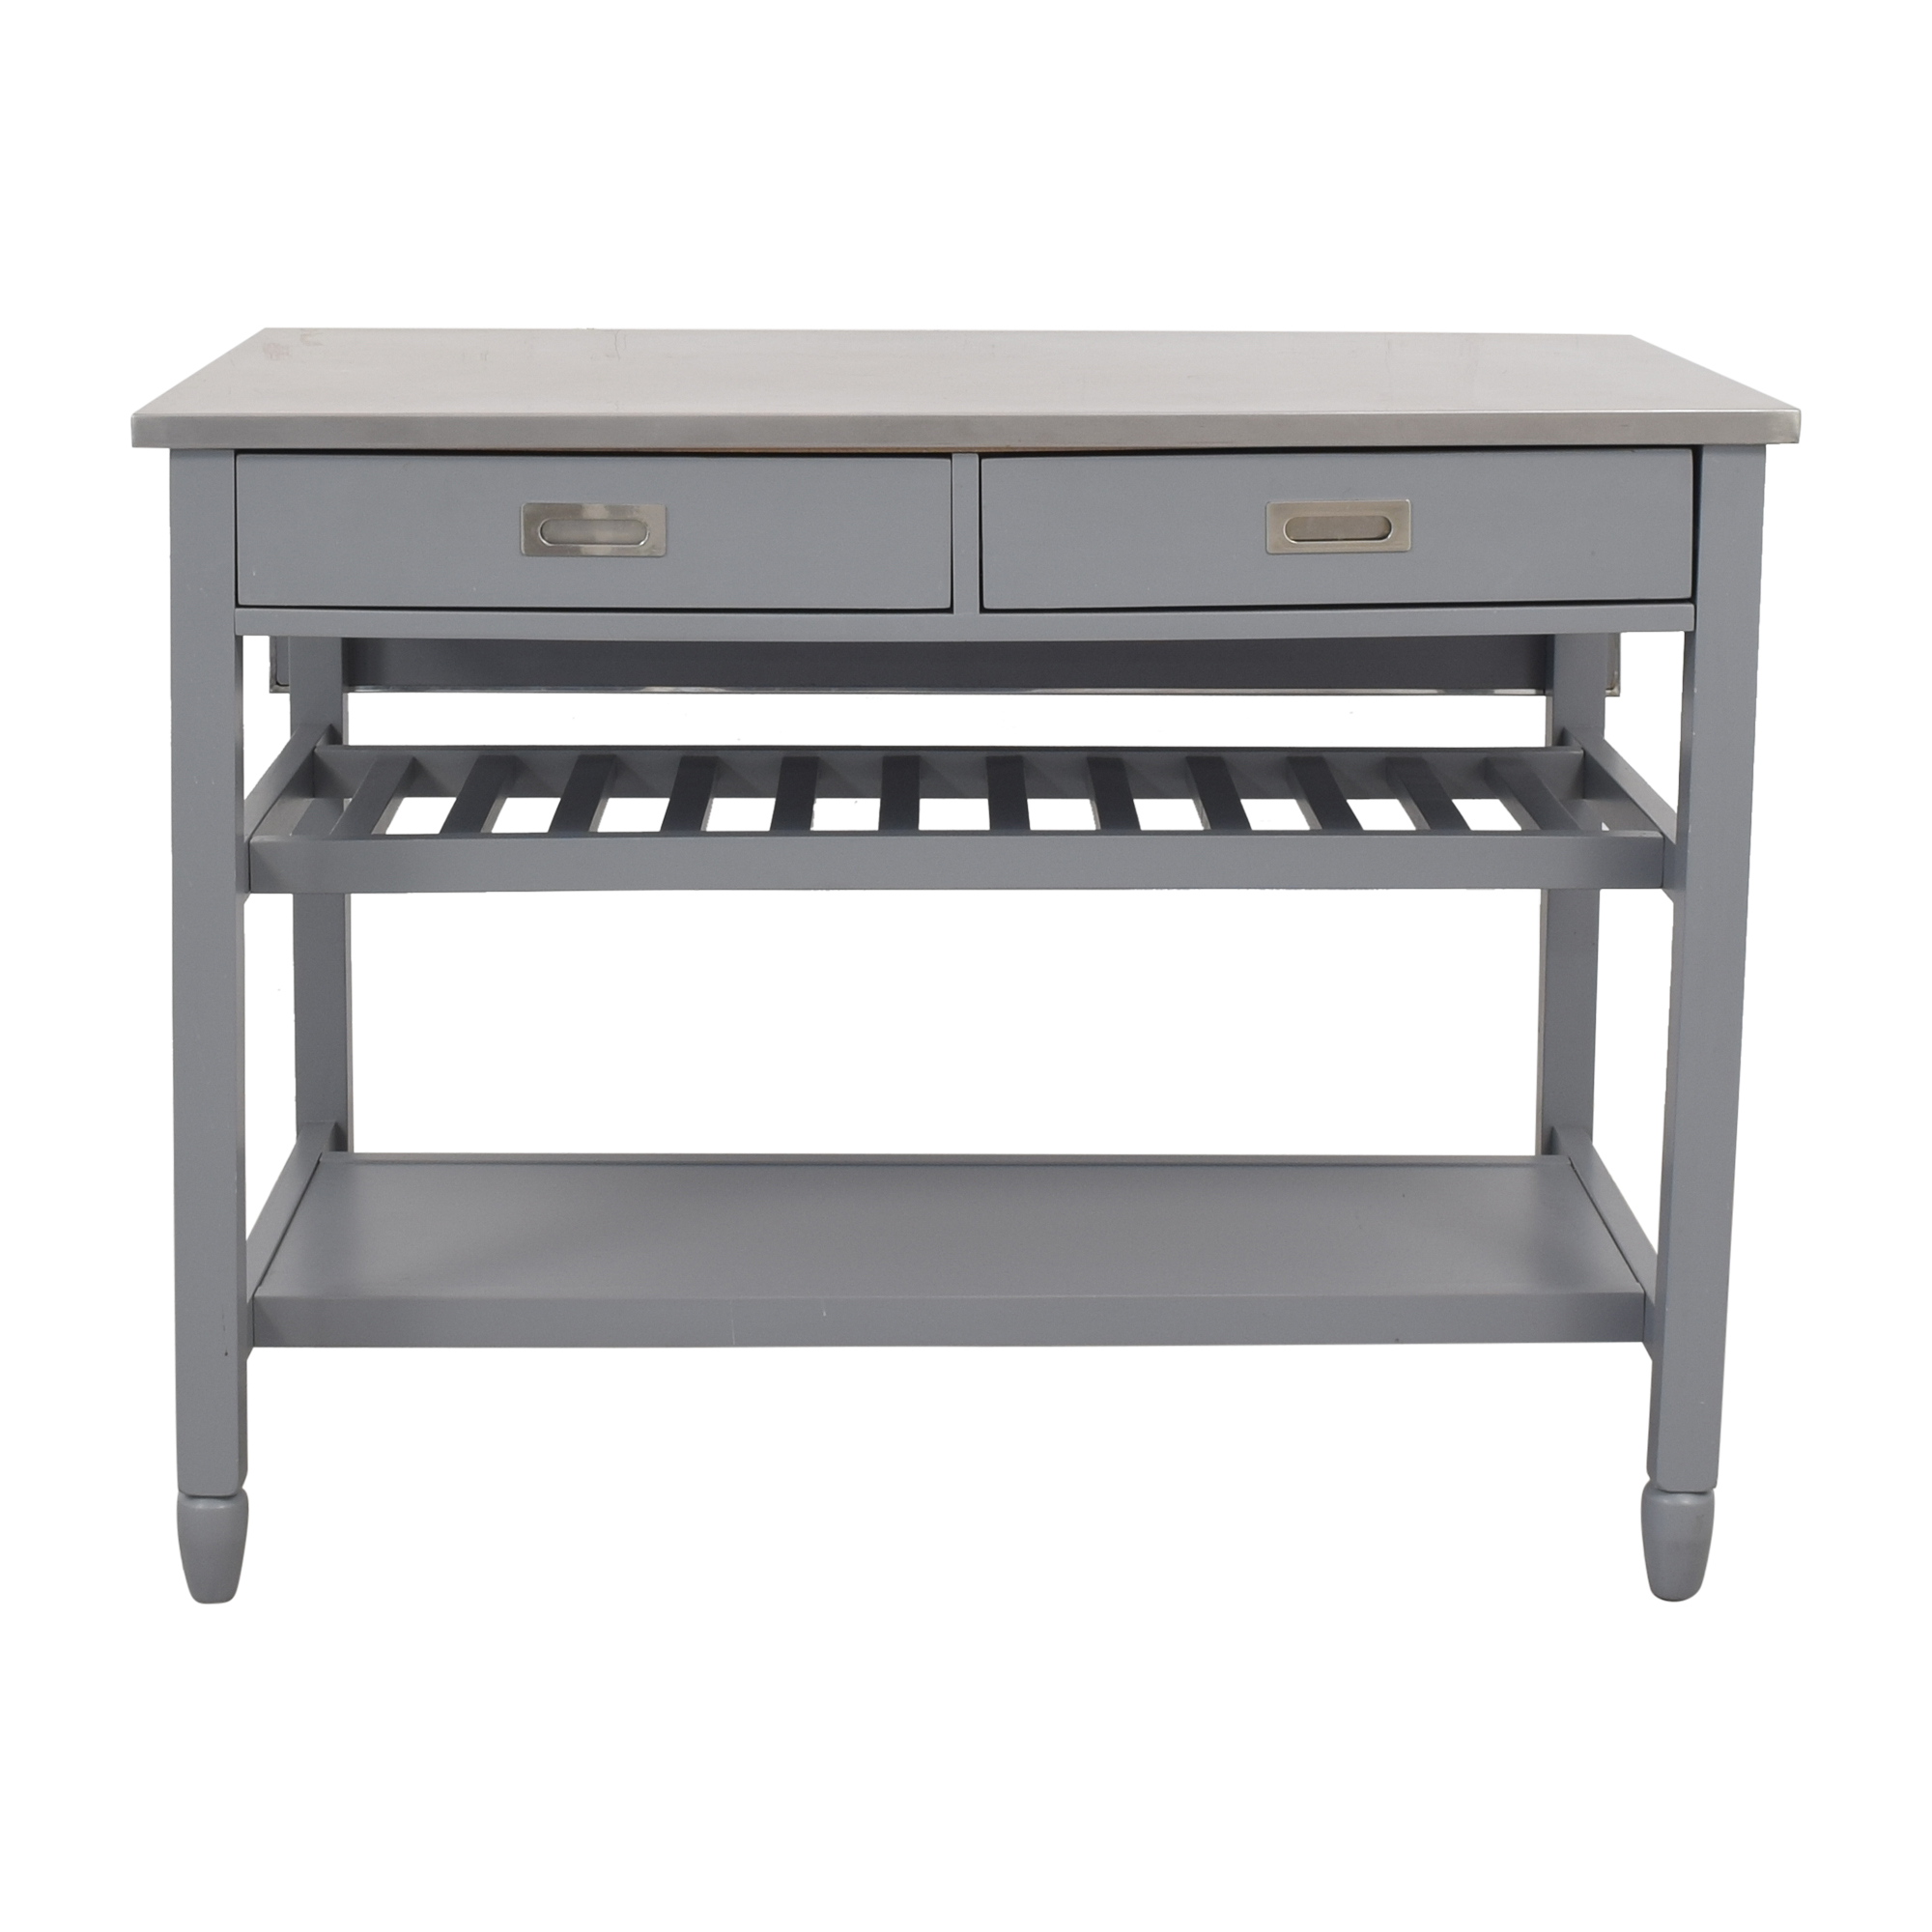 Crate & Barrel Crate & Barrel Belmont Open Kitchen Island pa